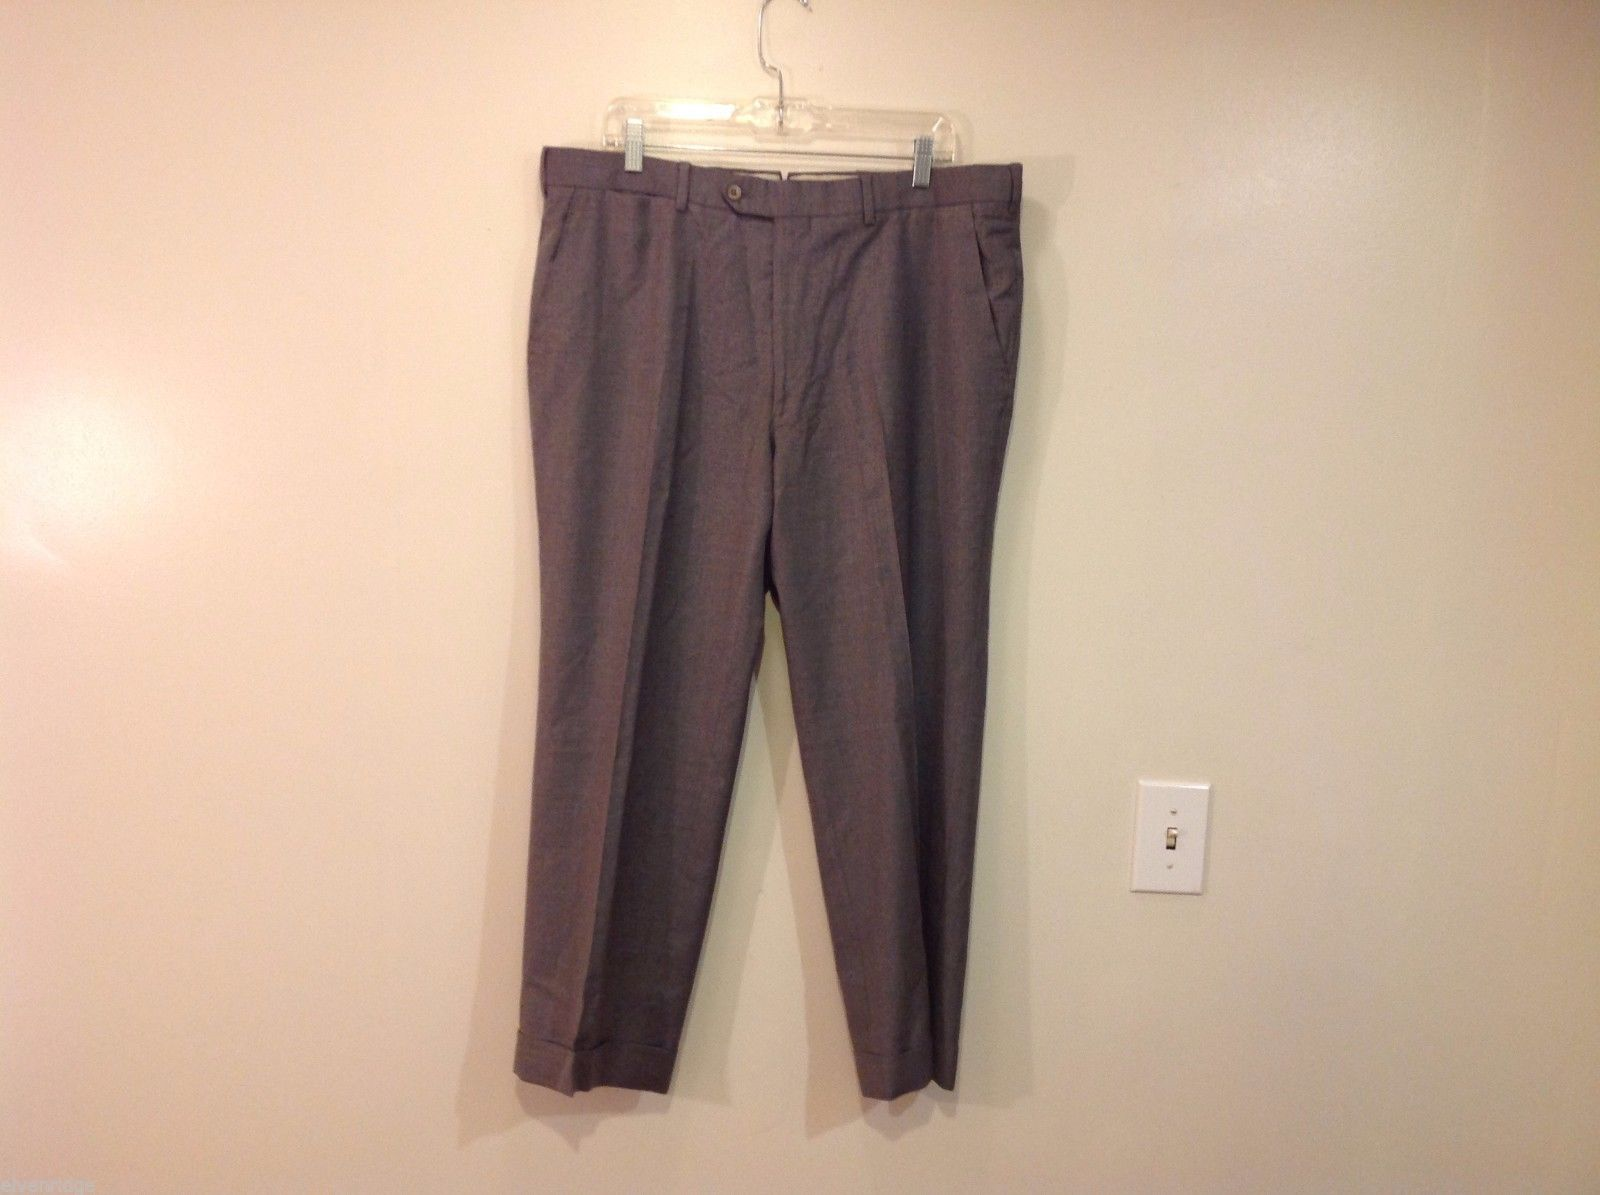 Paul Stuart Gray Dress Pants 38 inch length